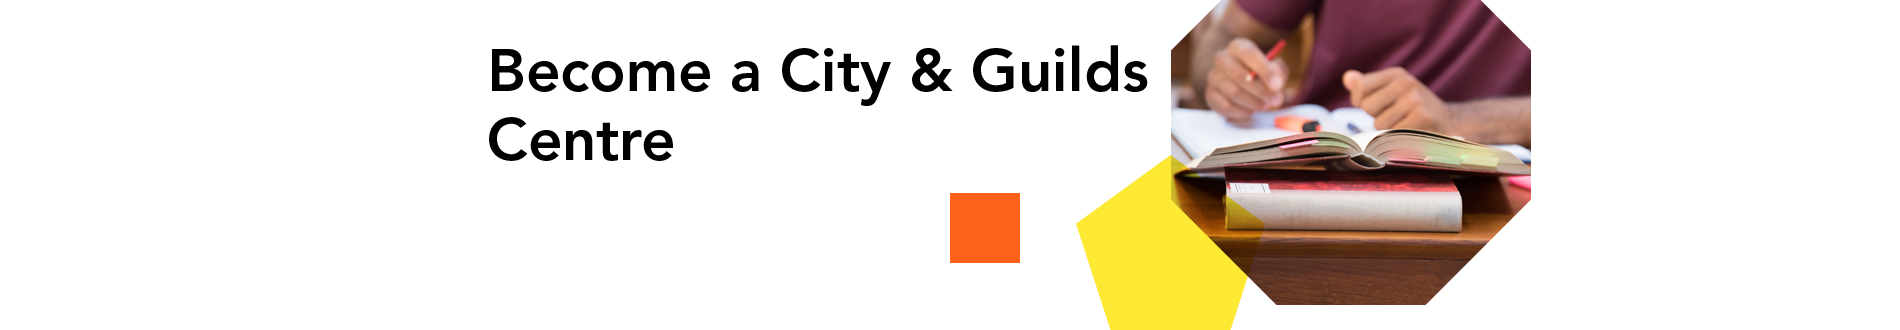 become a City & Guilds centre banner